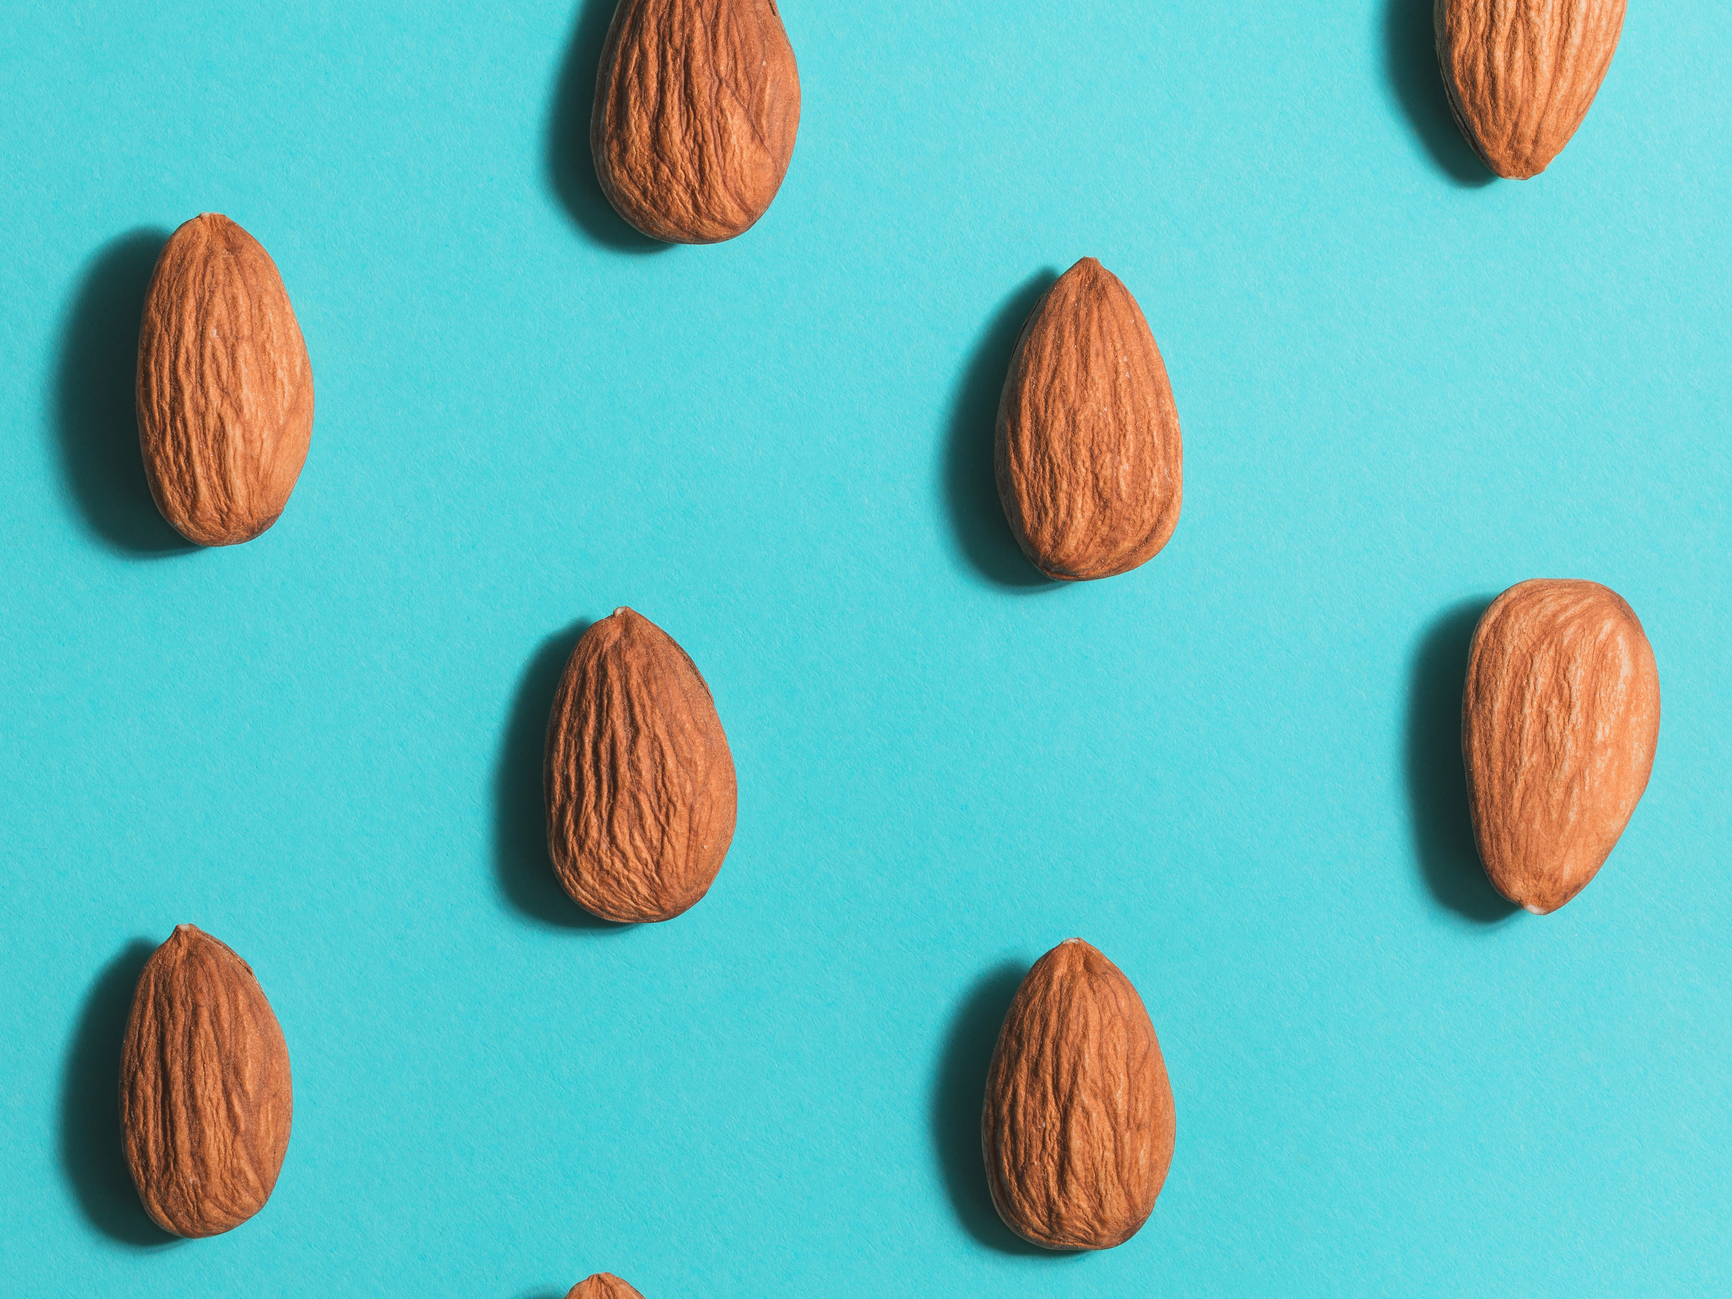 5 reasons almonds are the world's most nutritious (and helpful) food